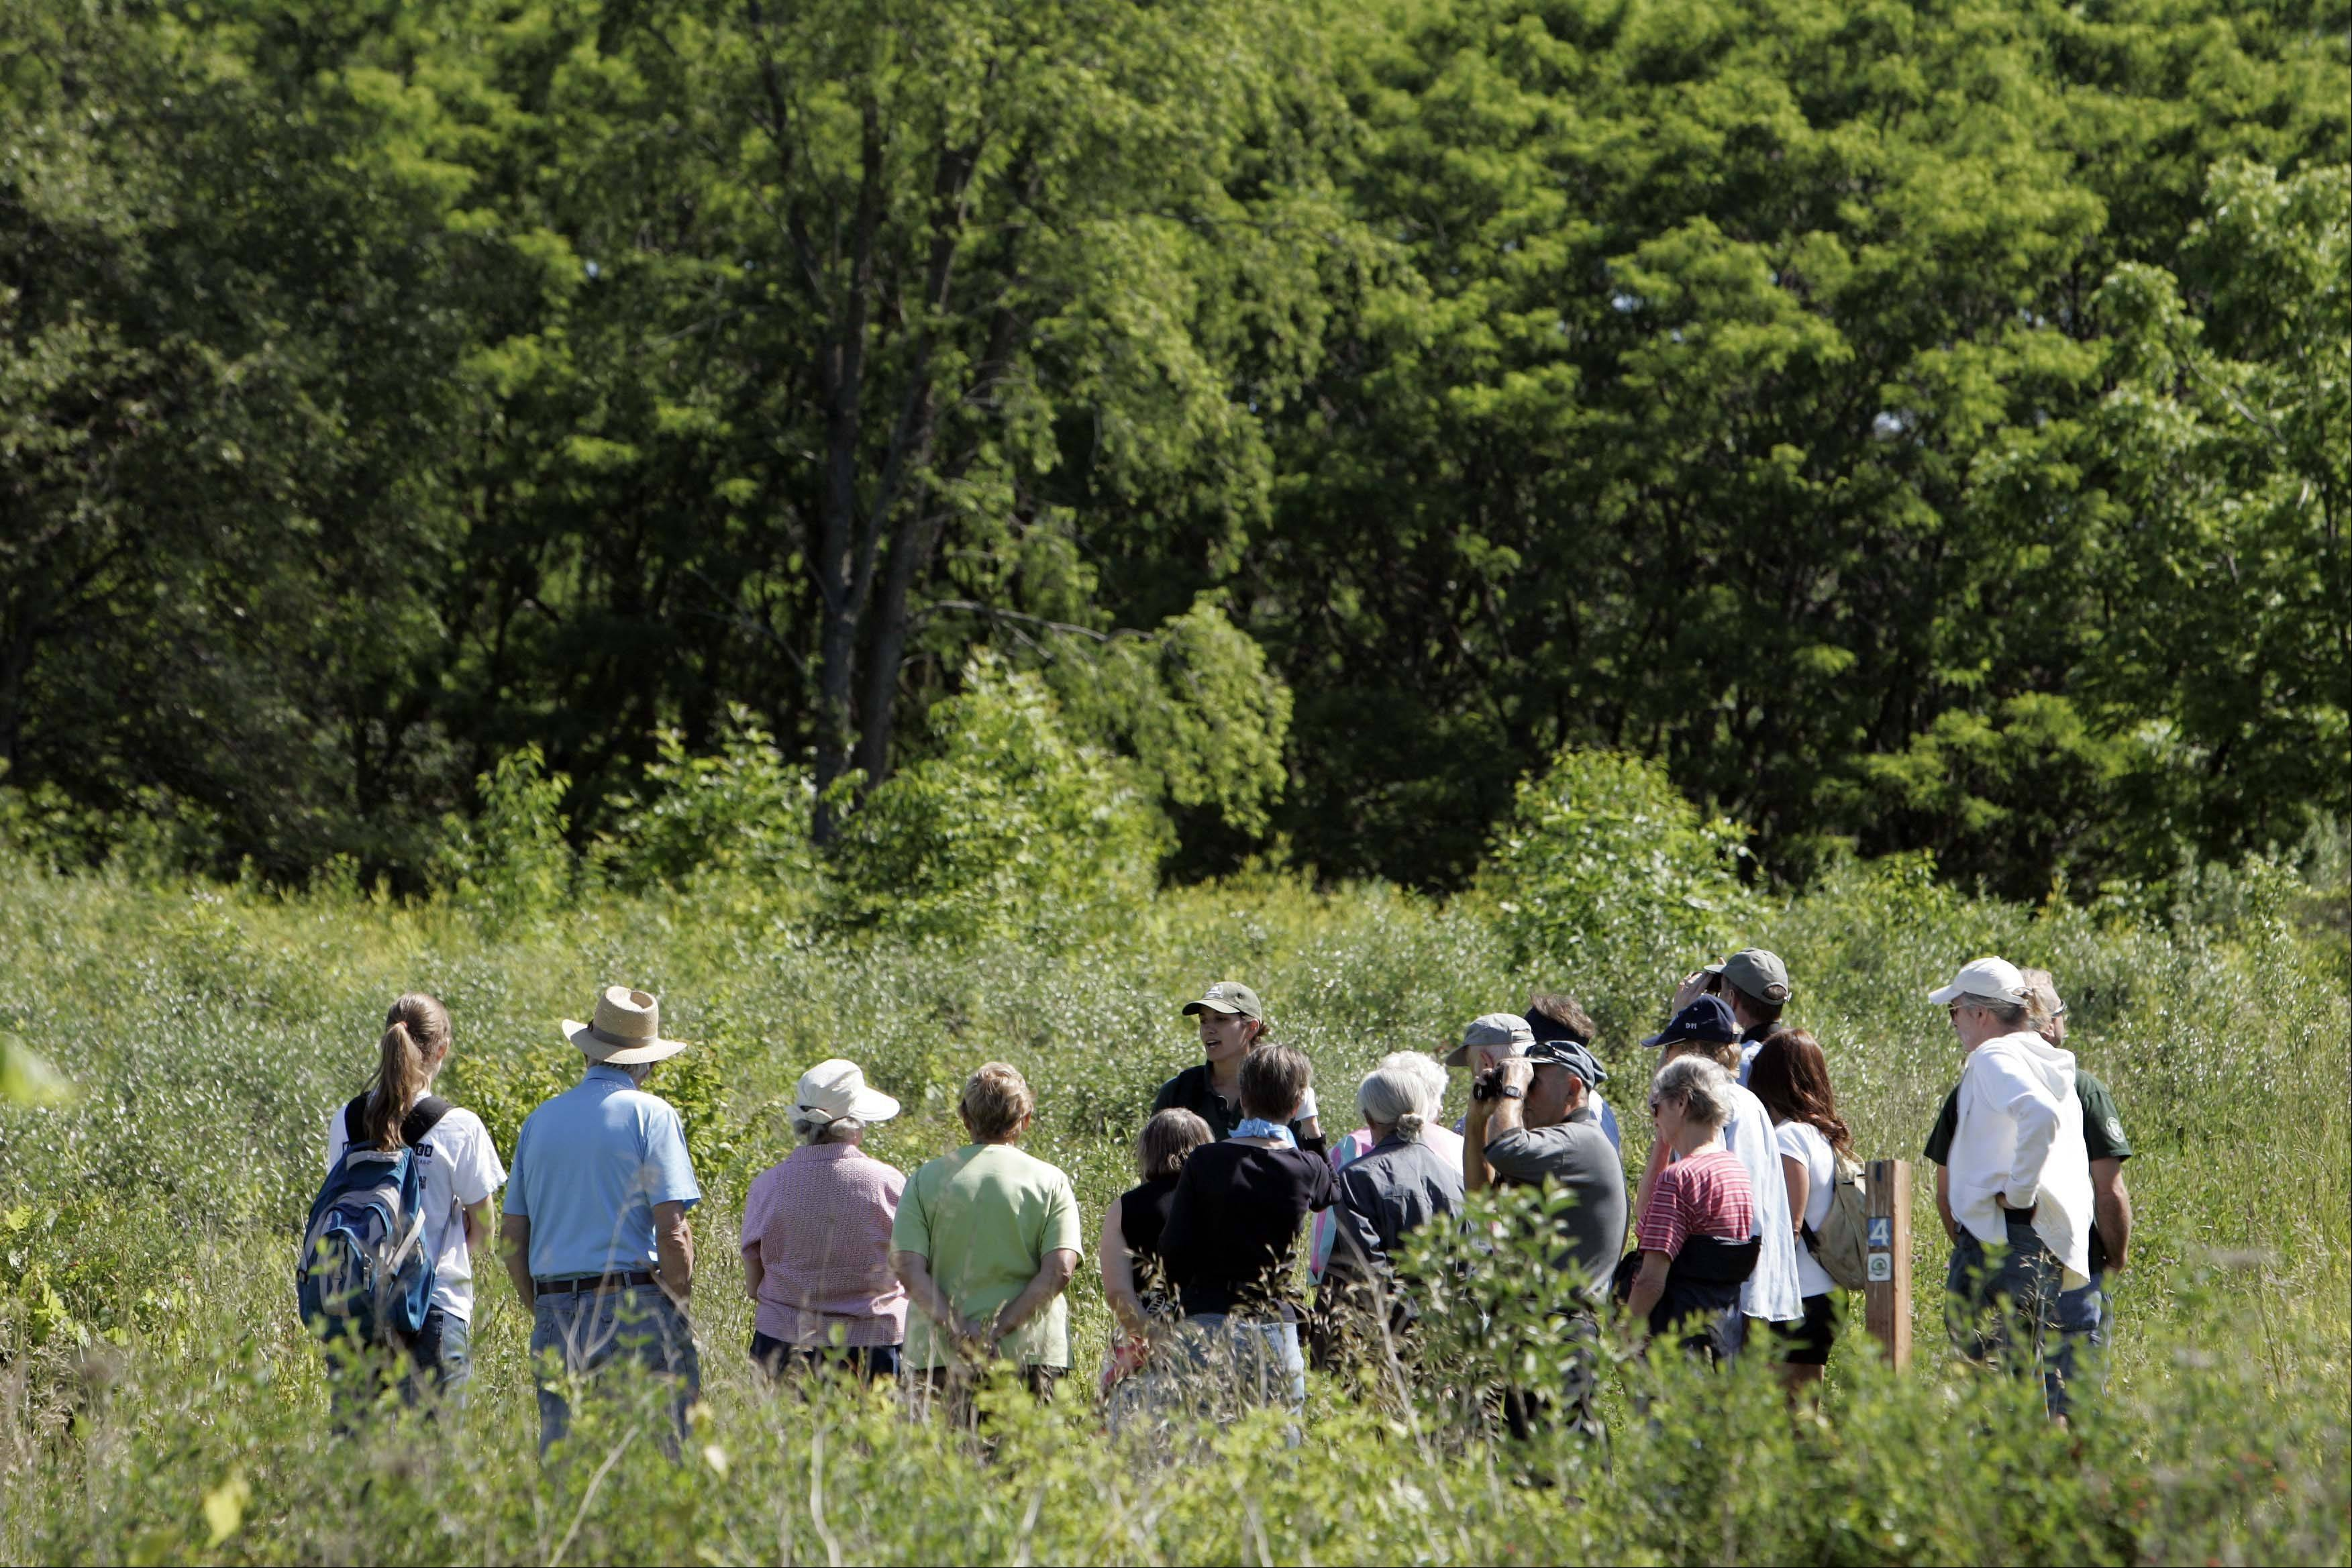 Forest Preserve District of Kane County naturalist Jaclyn Olson, top center, with hat, leads a group of seniors on one of the trails during a recent Senior Stroll at the Hampshire Forest Preserve.